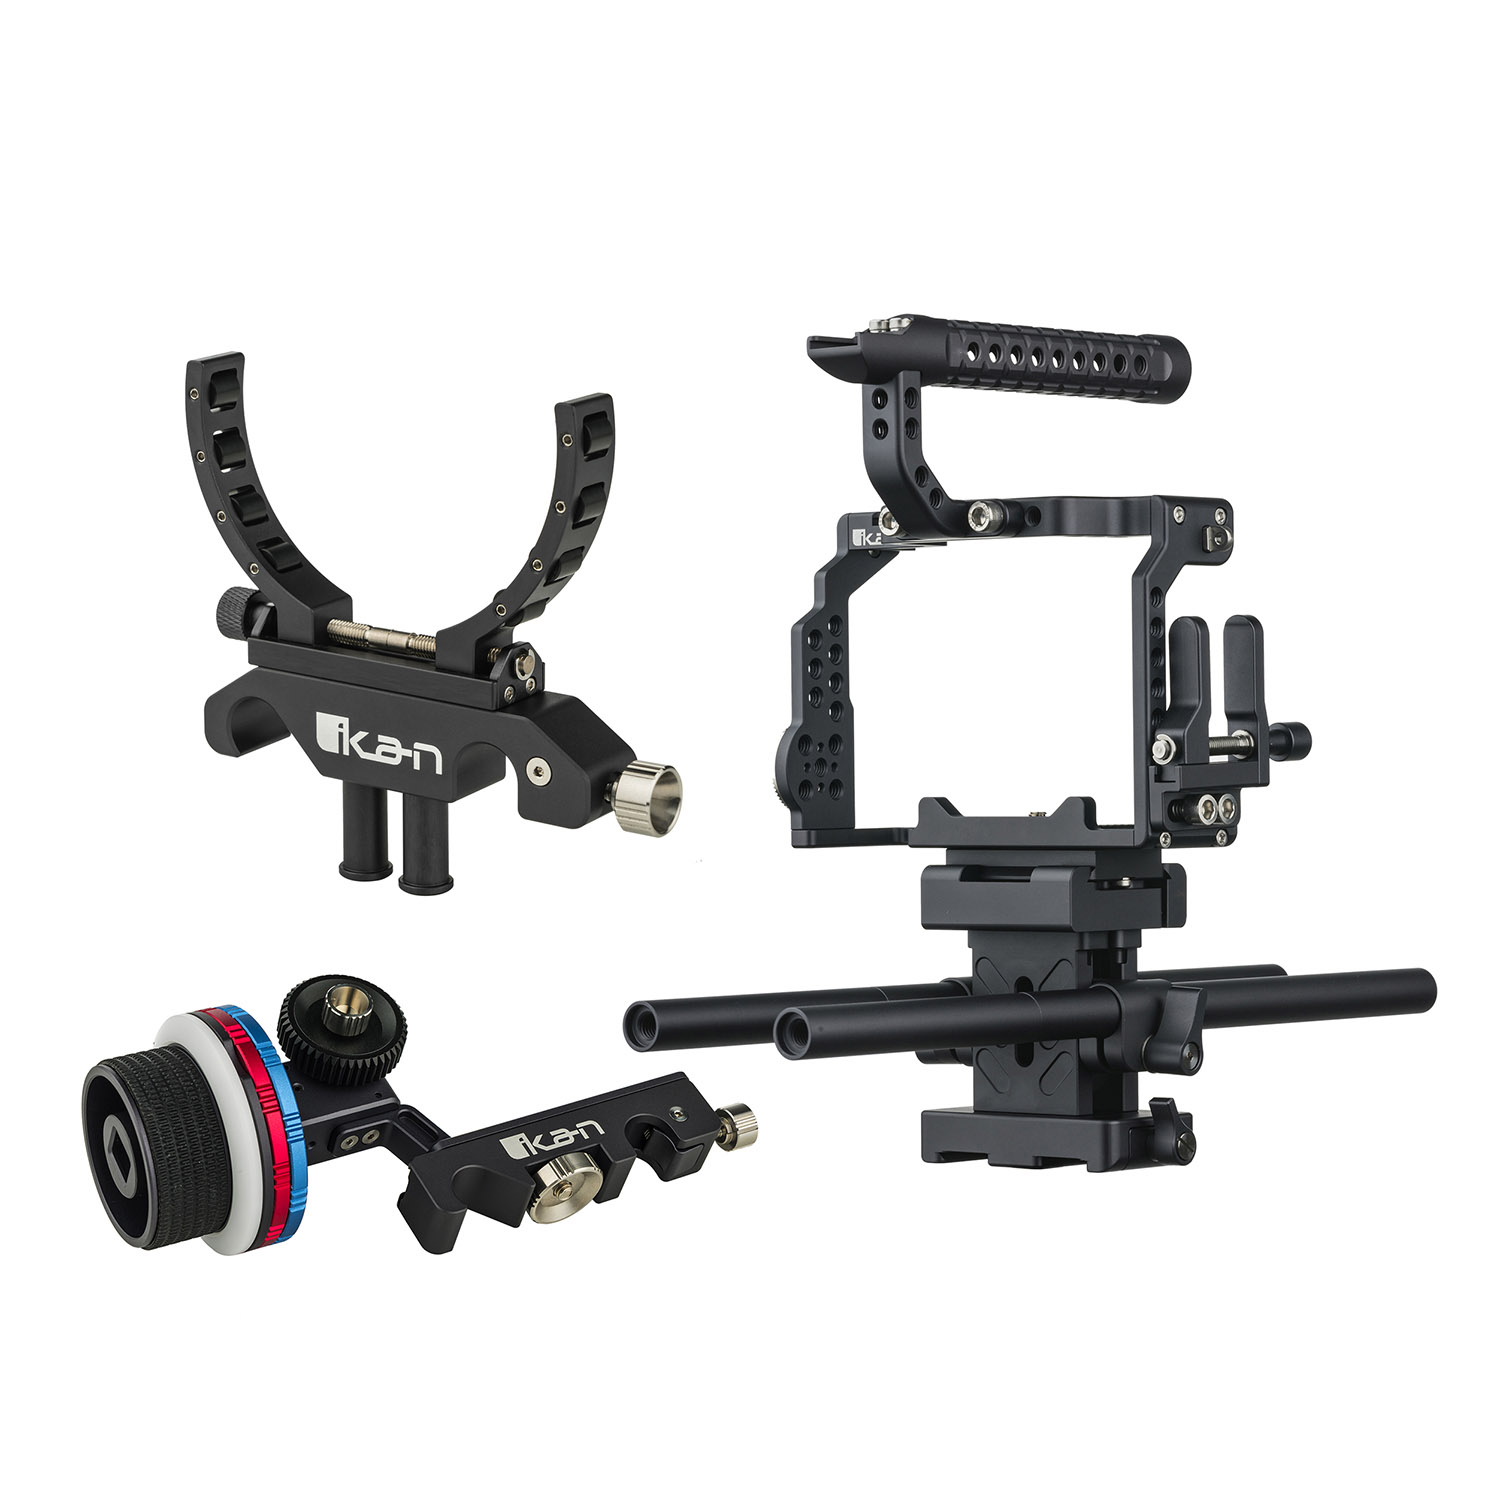 STRATUS Cage Kit for Sony A7RIII and A7III w/ Follow Focus and Lens Support